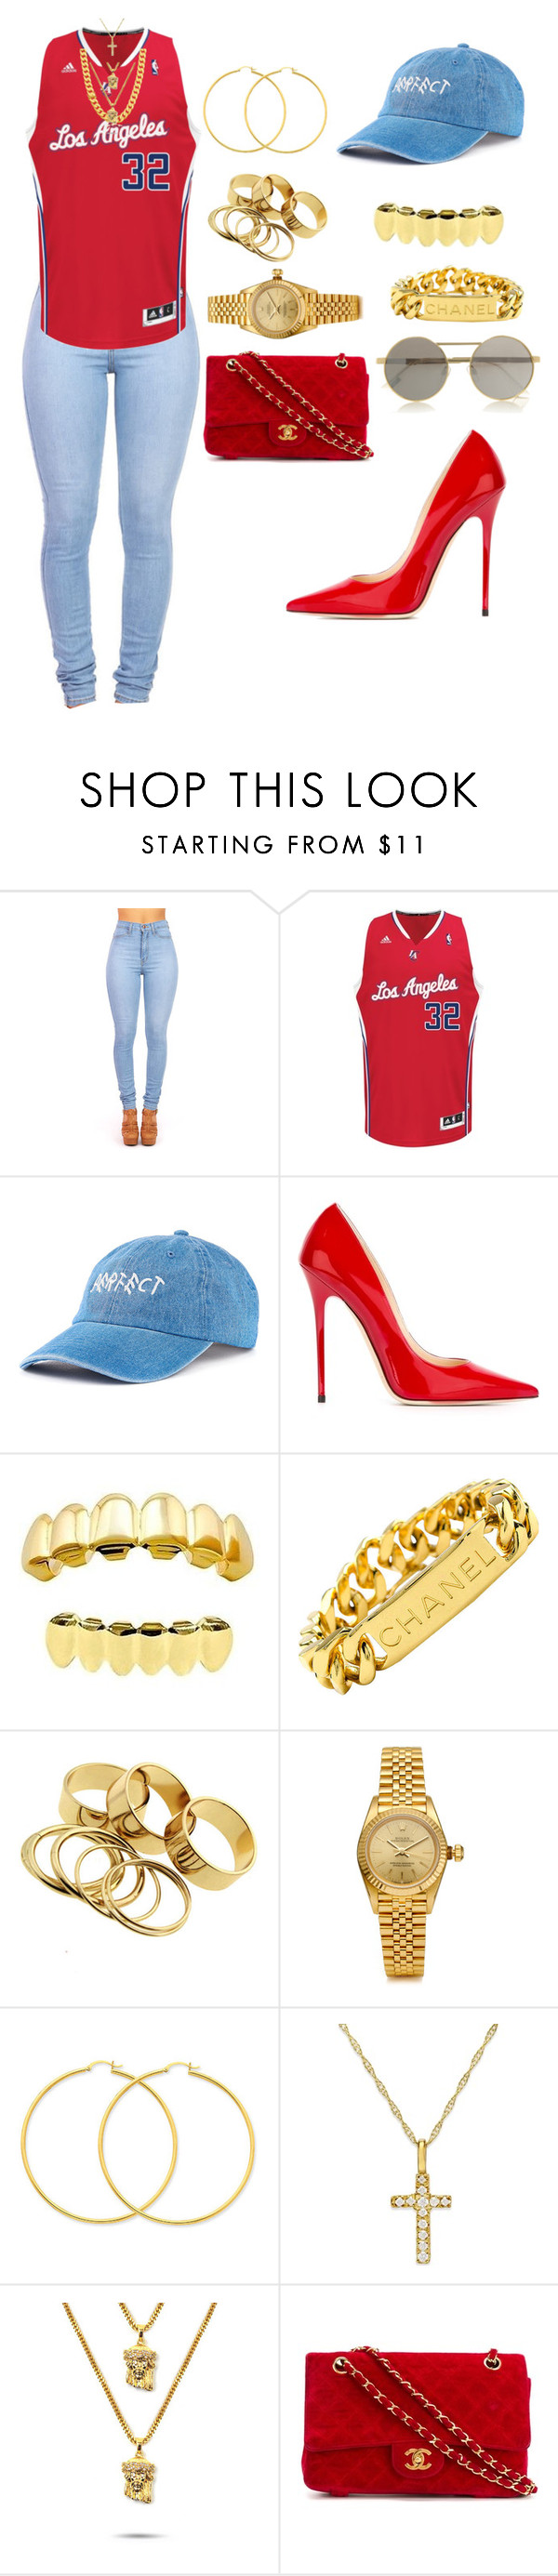 """Untitled #1095"" by mollface ❤ liked on Polyvore featuring adidas, Jimmy Choo, Chanel, Rolex, The Gold Gods and Le Specs"